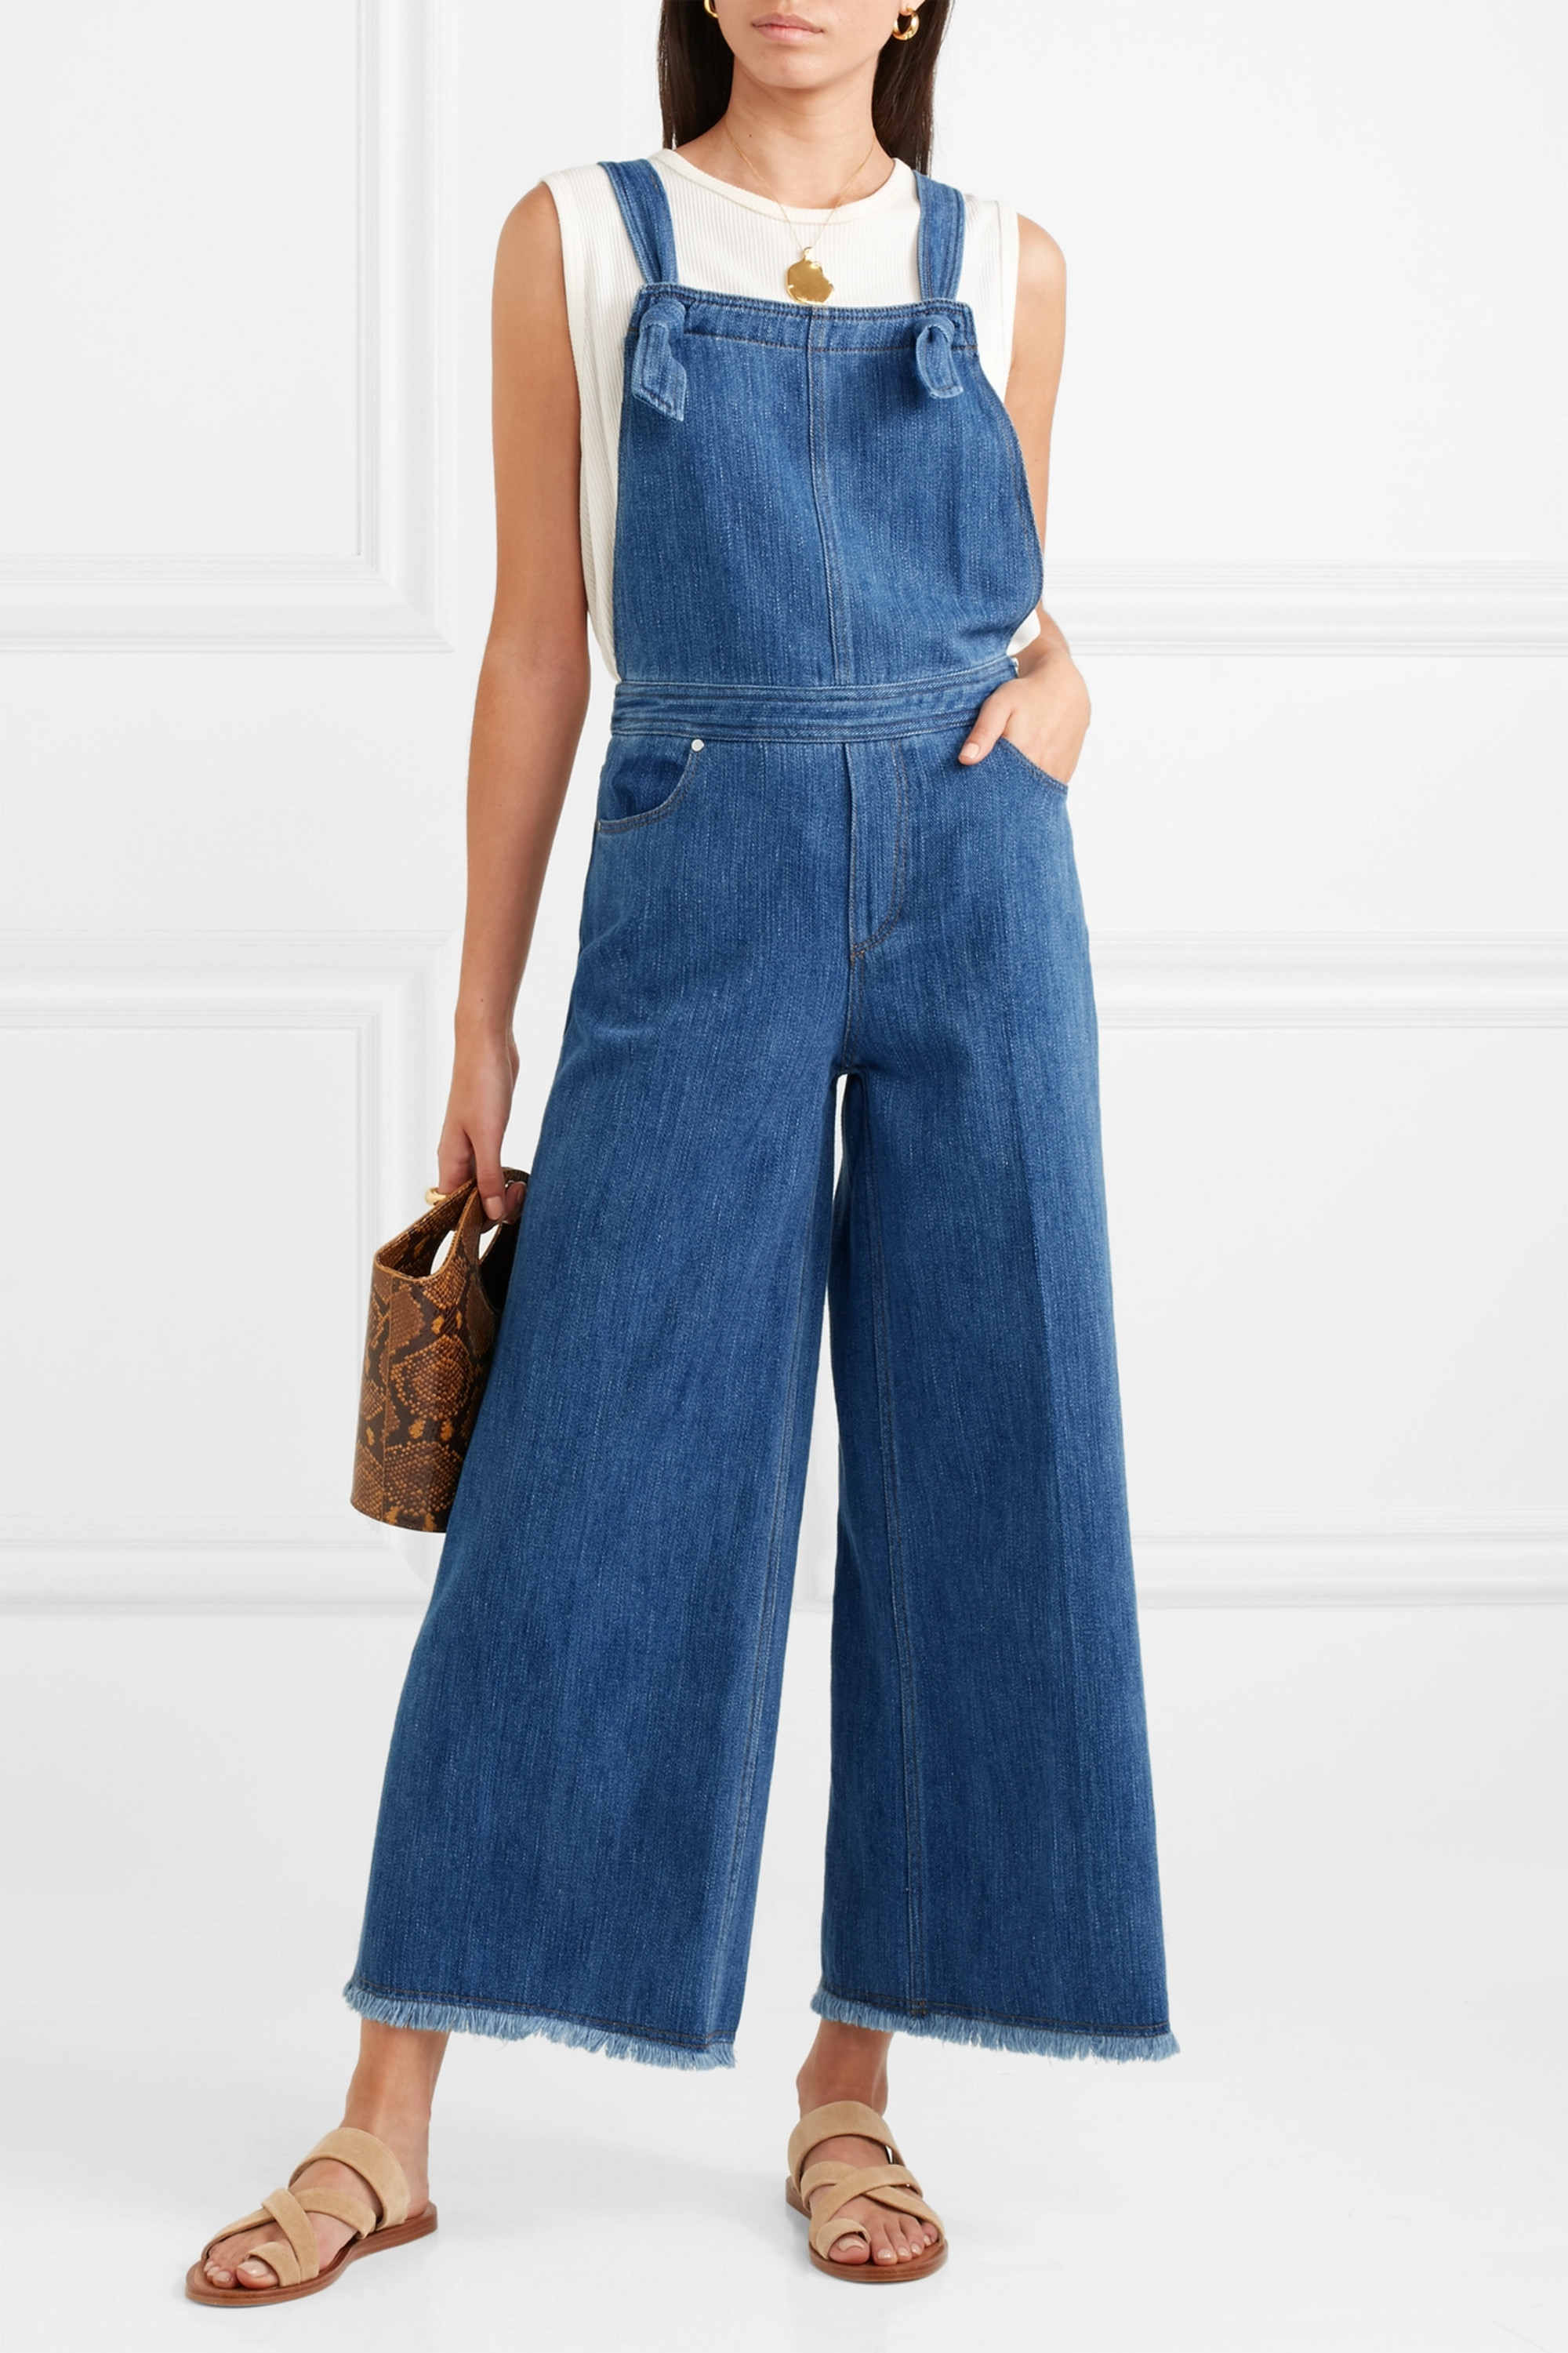 Elizabeth and James Jennette frayed denim overalls